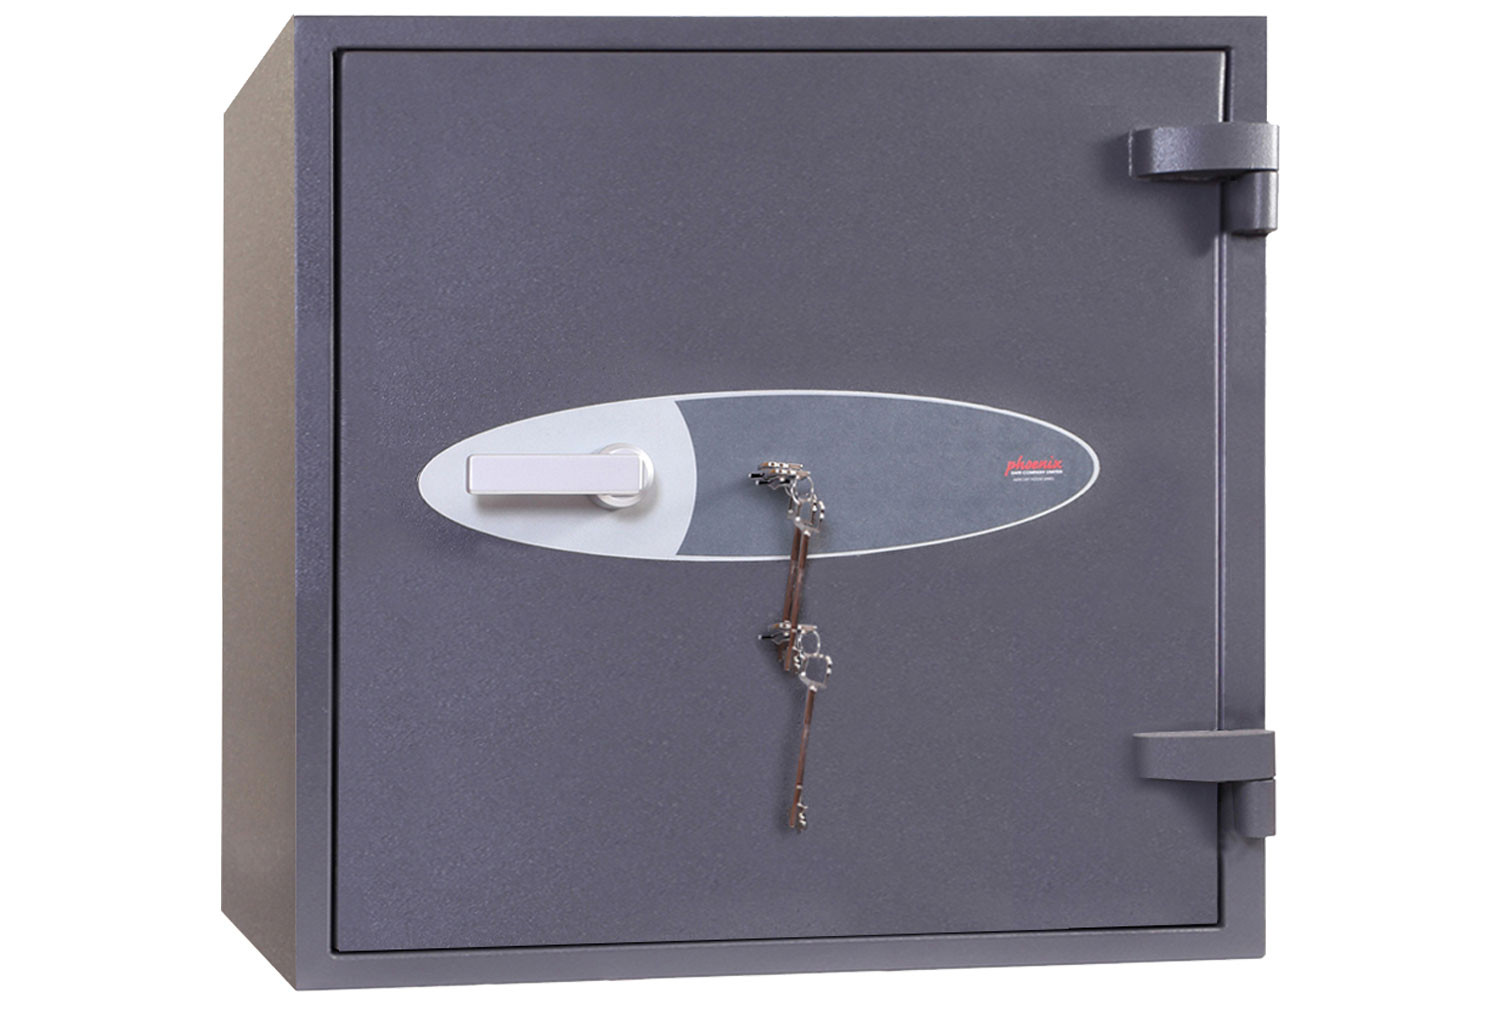 Phoenix Cosmos HS9071K High Security Safe With Key Lock (121ltrs)